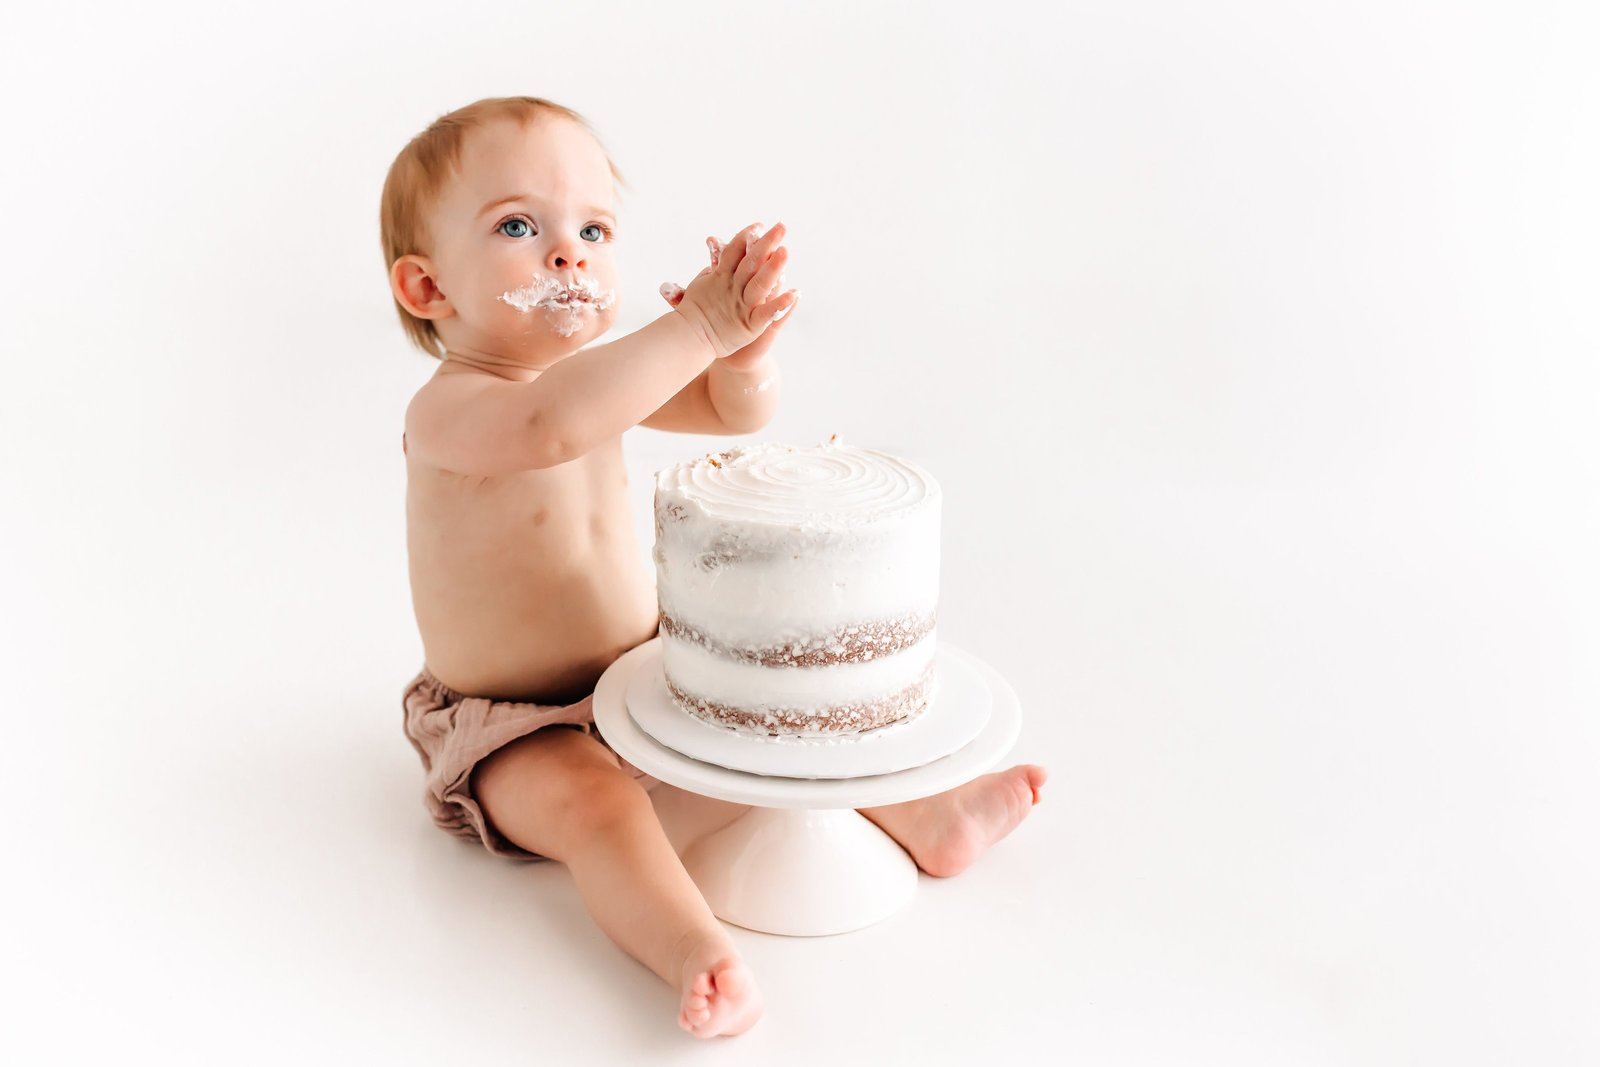 St_Louis_Baby_Photographer_Kelly_Laramore_Photography_85